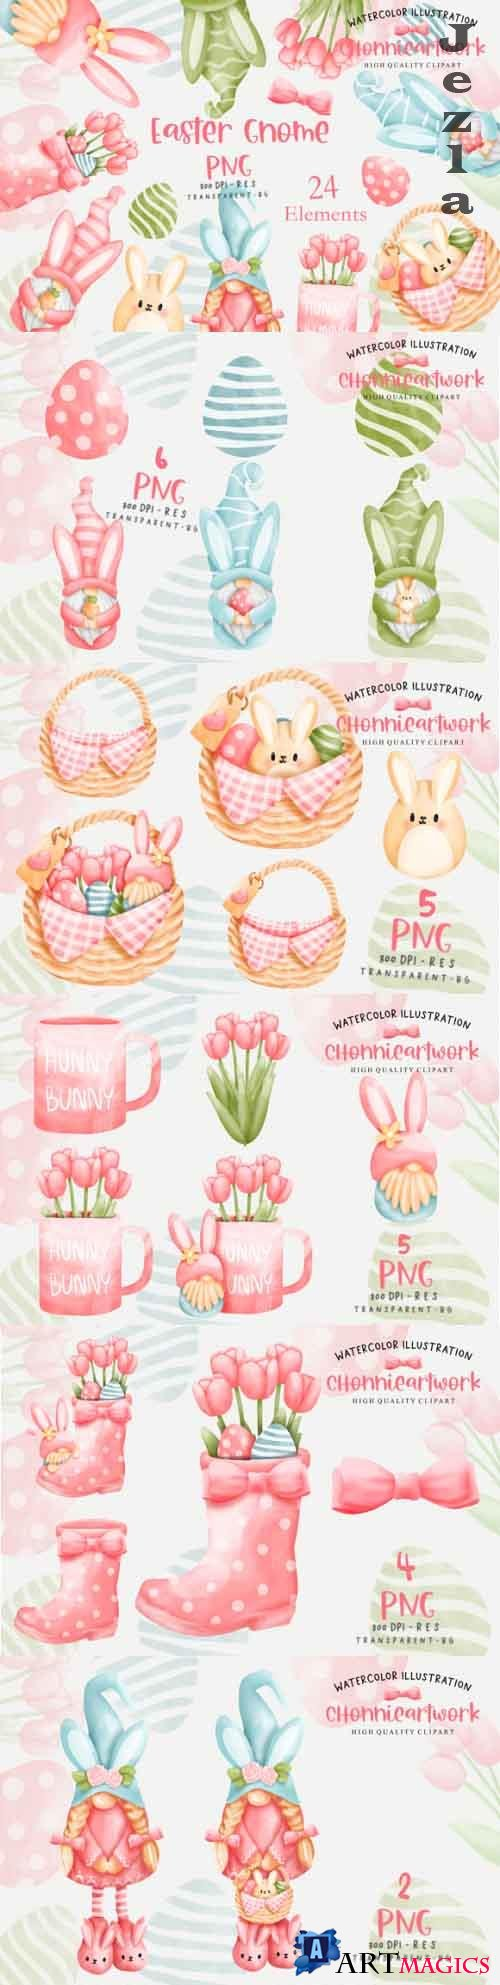 Easter Day with Gnome Clipart Bundle